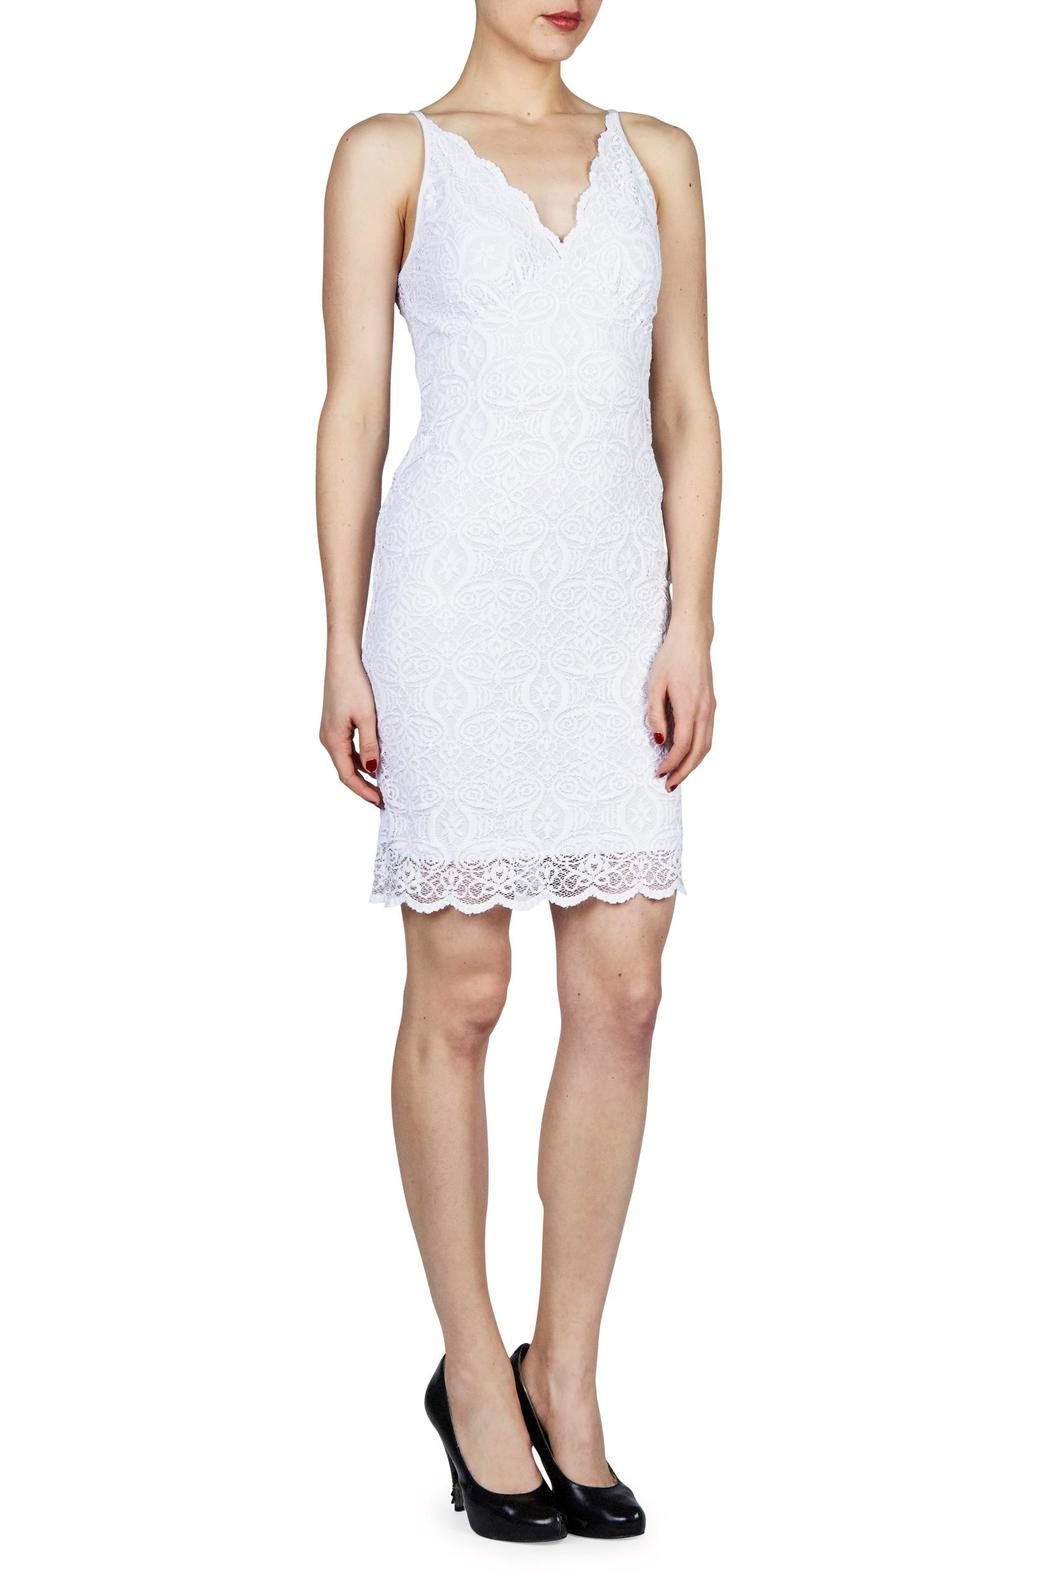 PAPILLON BLANC V Neck Lace Dress - Front Cropped Image